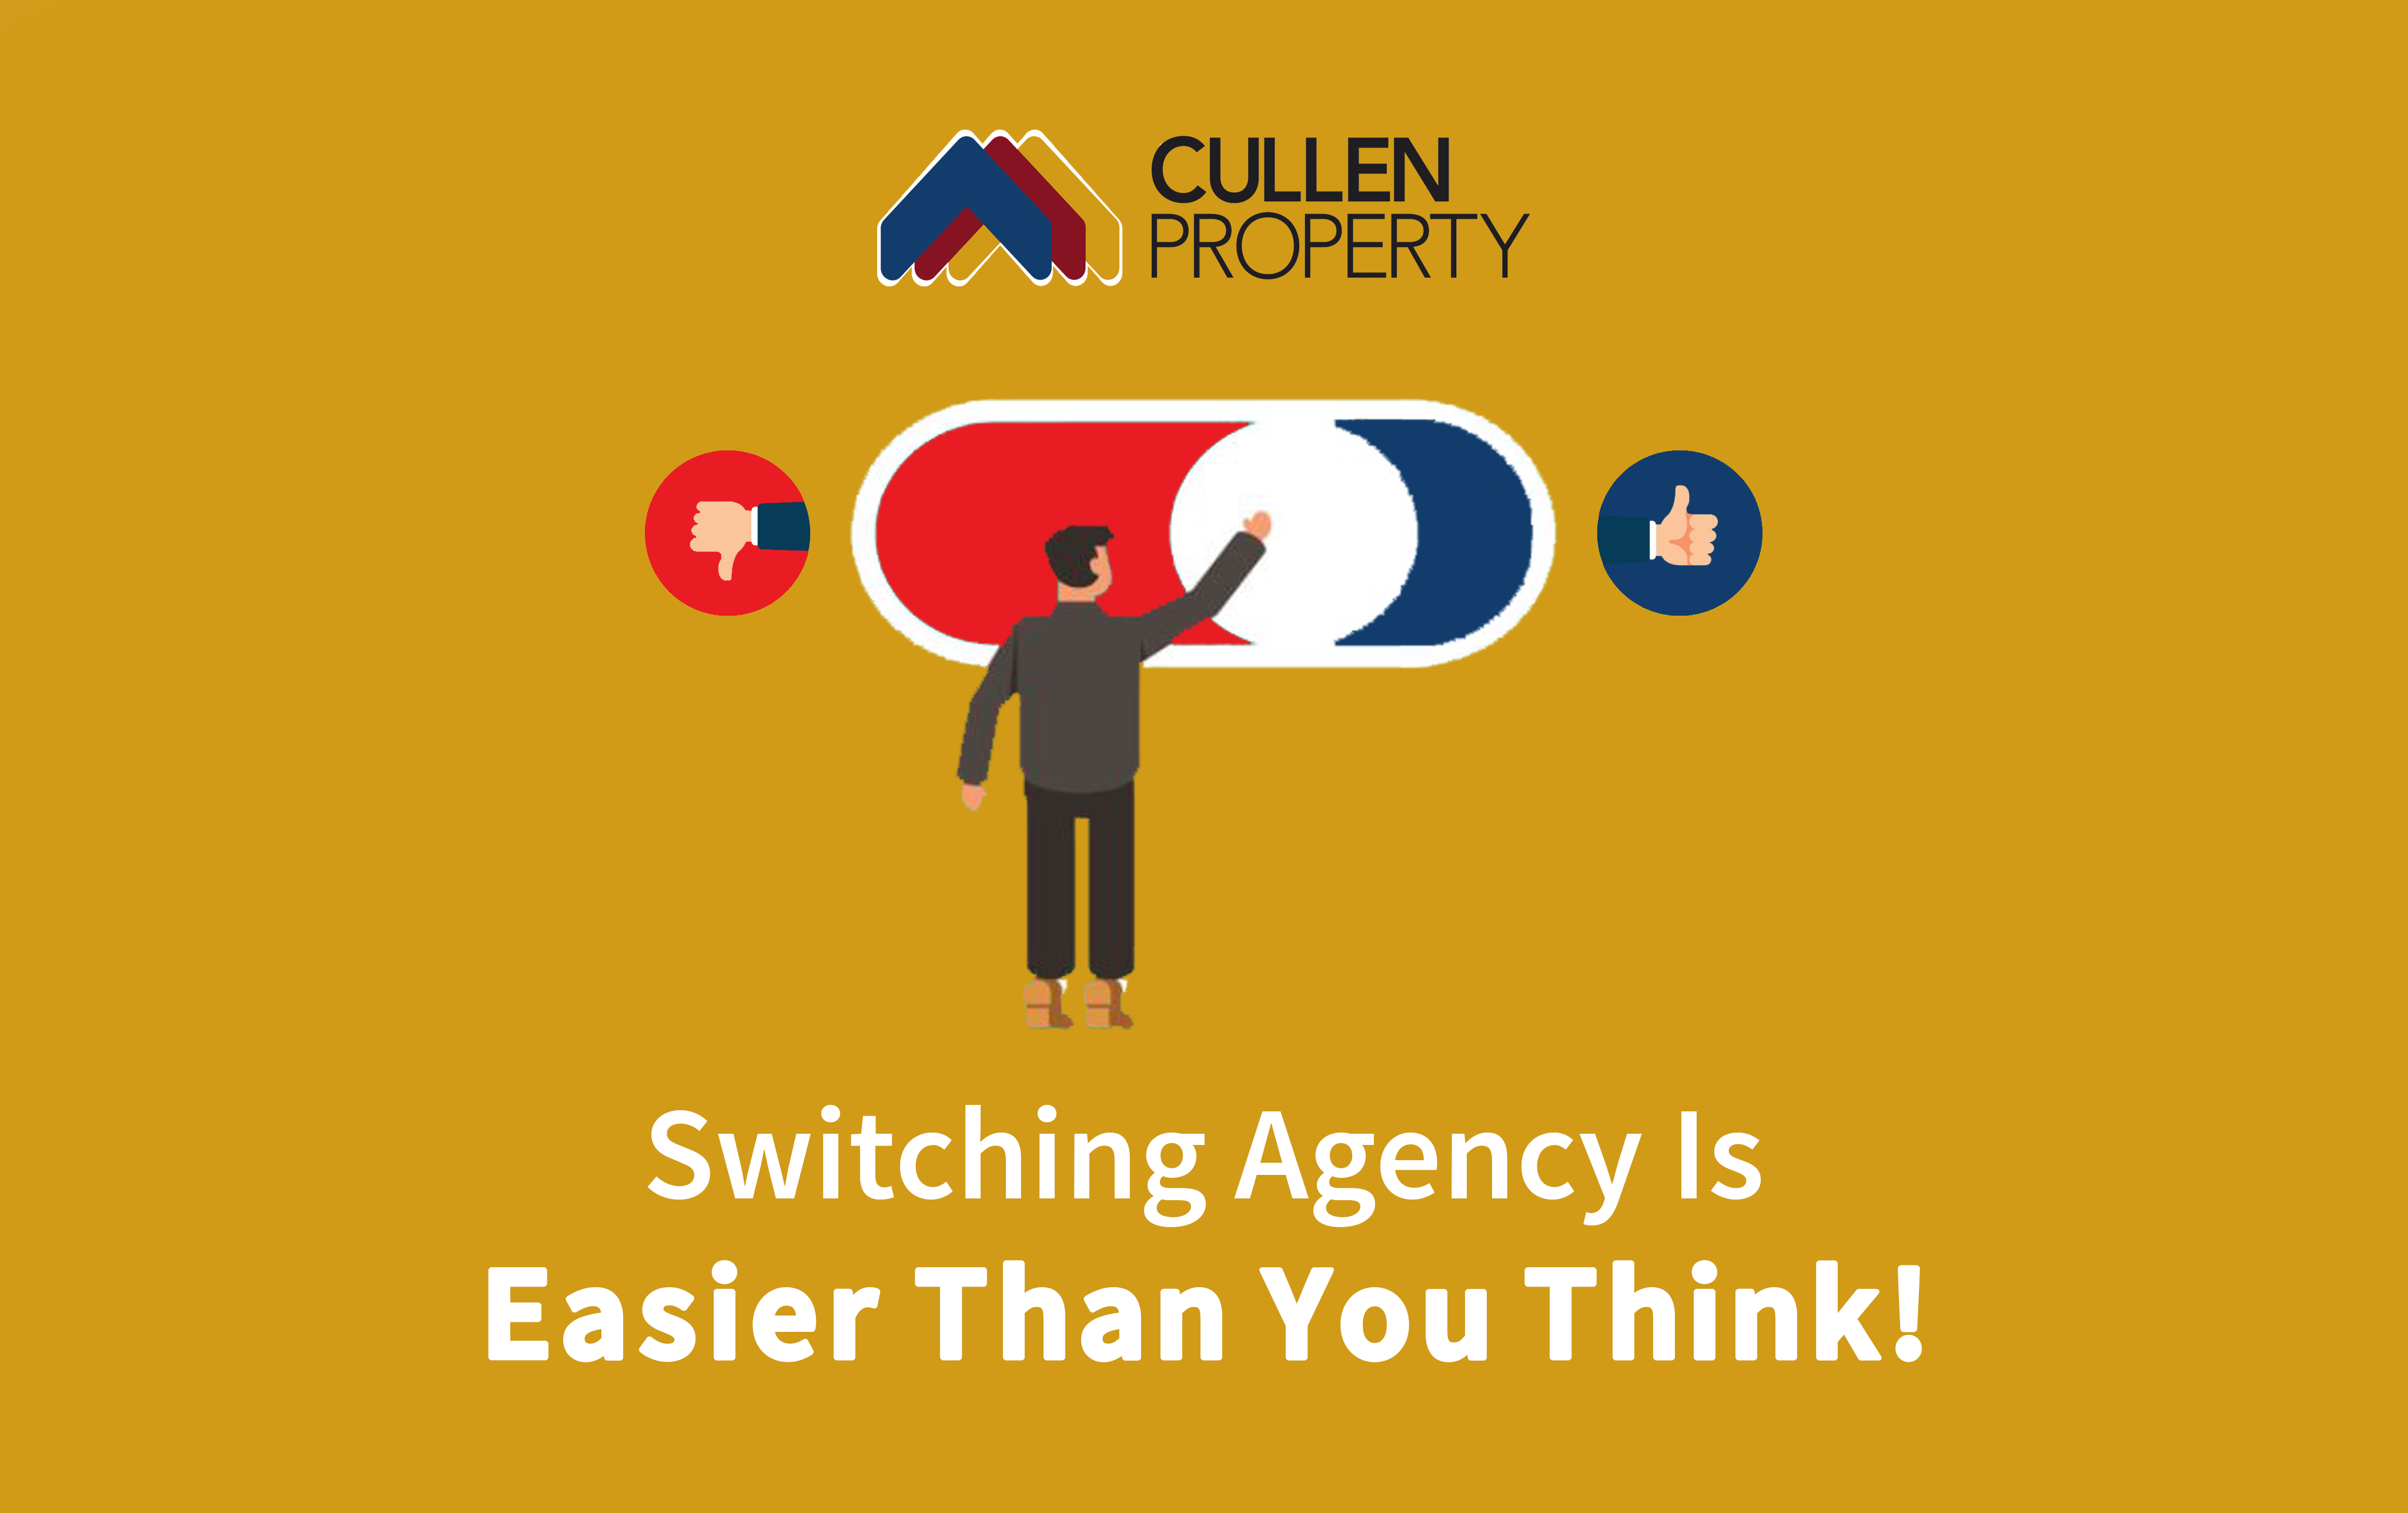 Switching Letting Agency? It's Easier Than You'd Think!